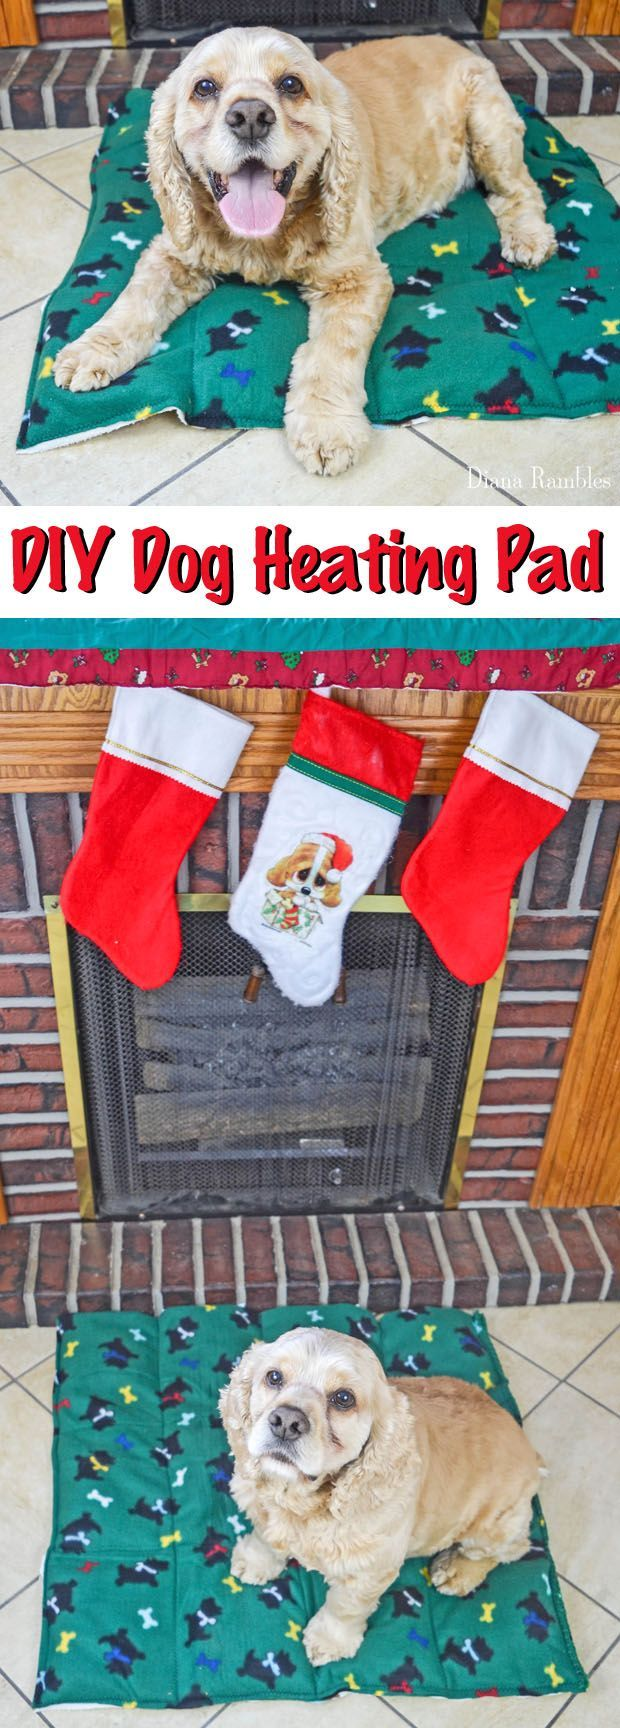 DIY Dog Heating Pad Tutorial - Make this Dog Heating Pad to keep your pooch warm during the cold of the winter. Your pet will love this heating bed. AD #PAWsomeGifts #ClausAndPaws